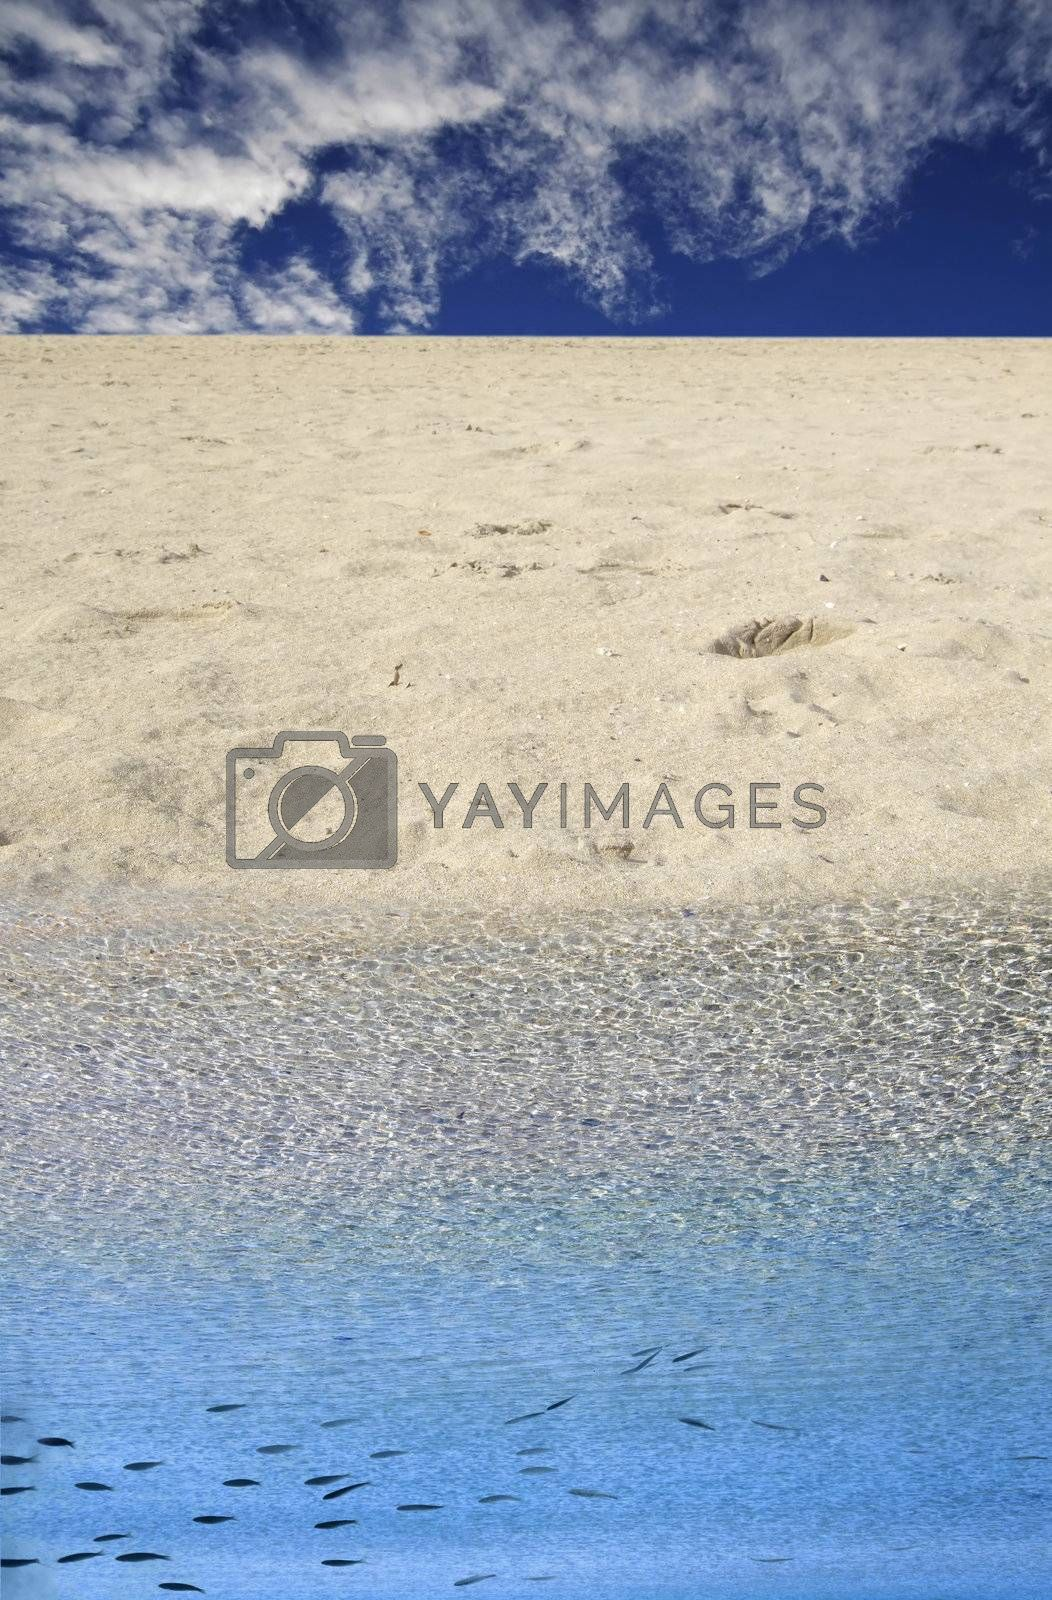 Beach Series - images depicting the general feeling and mood at the beach in the Mediterranean